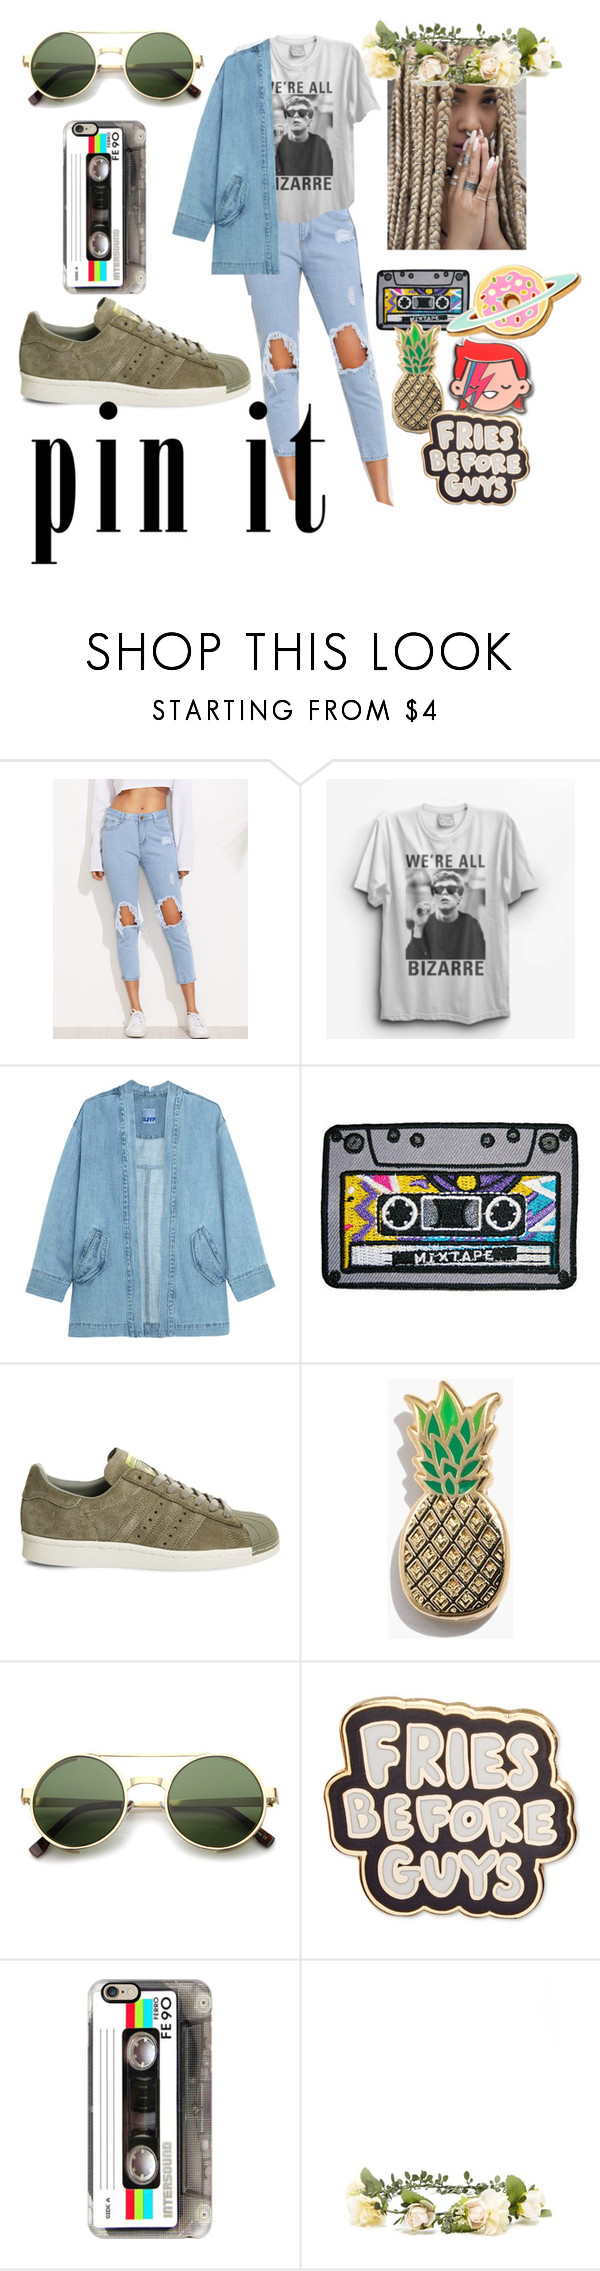 """""""Slightly 80s maybe??"""" by arion-the-gemini ❤ liked on Polyvore featuring Steve J & Yoni P, adidas, Madewell, ZeroUV, ban.do, Casetify, Forever 21, pins, iLOVEthe80s and thebreakclub"""